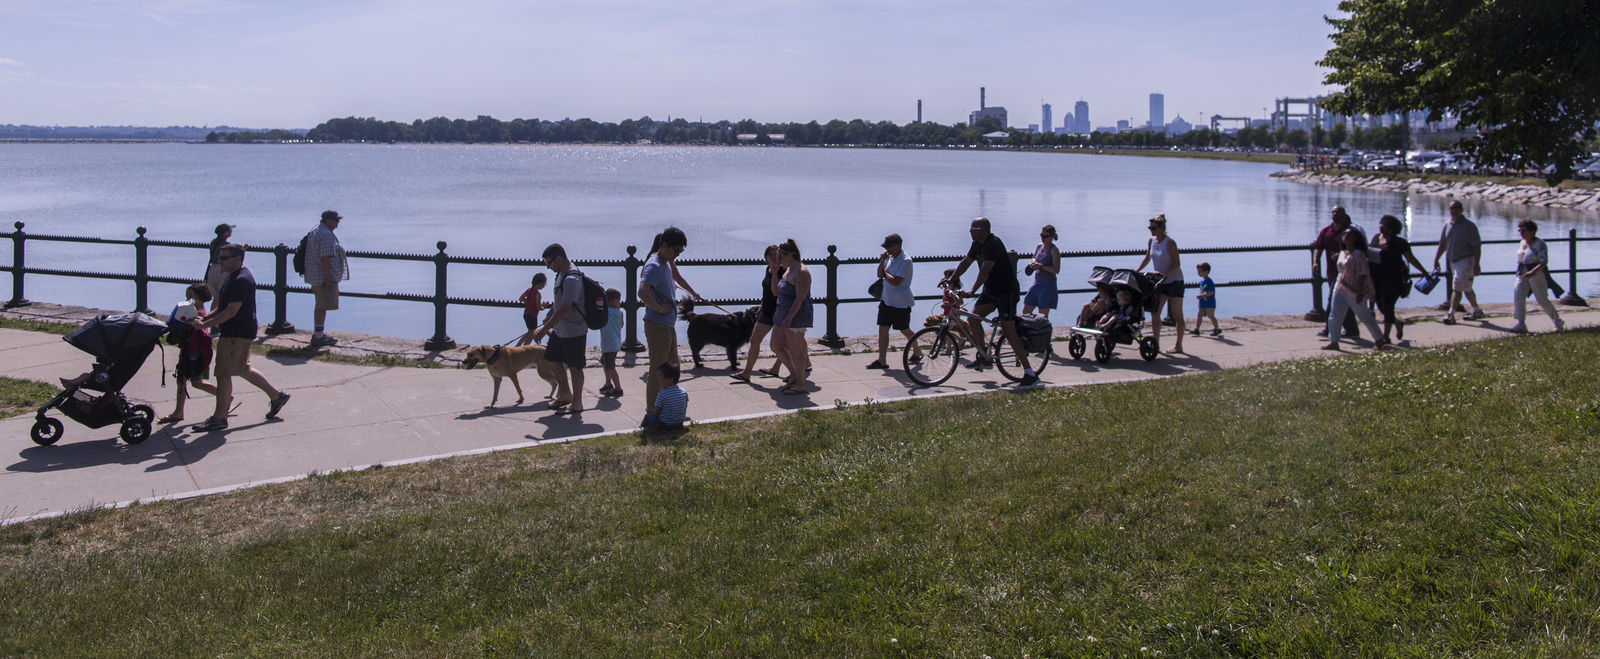 People walk and bike along Boston's waterfront.